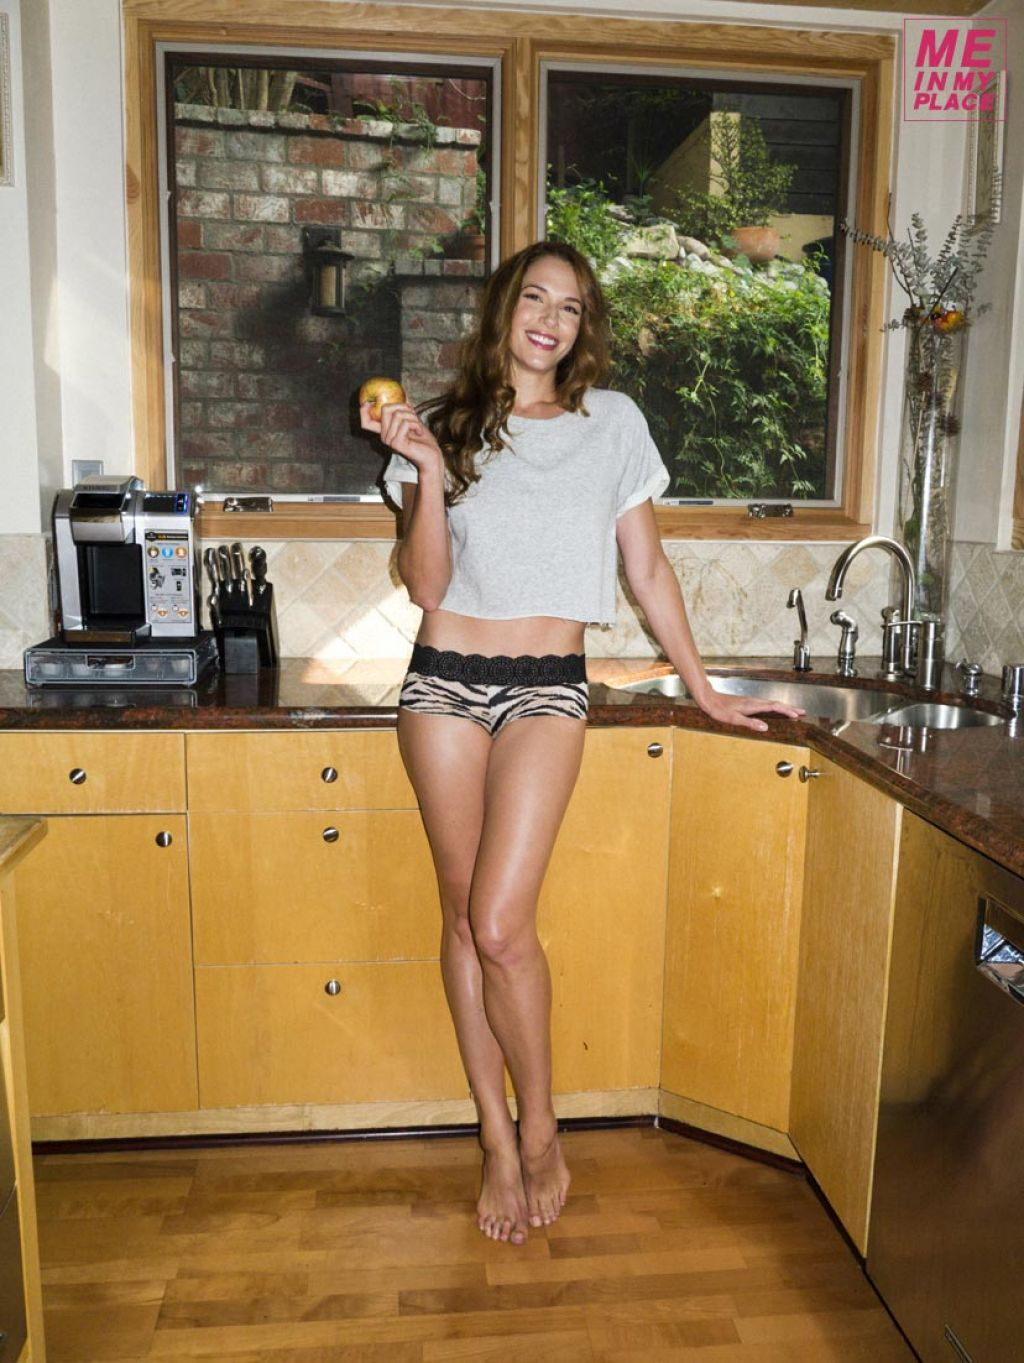 http://celebmafia.com/wp-content/uploads/2014/01/amanda-righetti-me-in-my-place-photoshoot-2013-_10.jpg